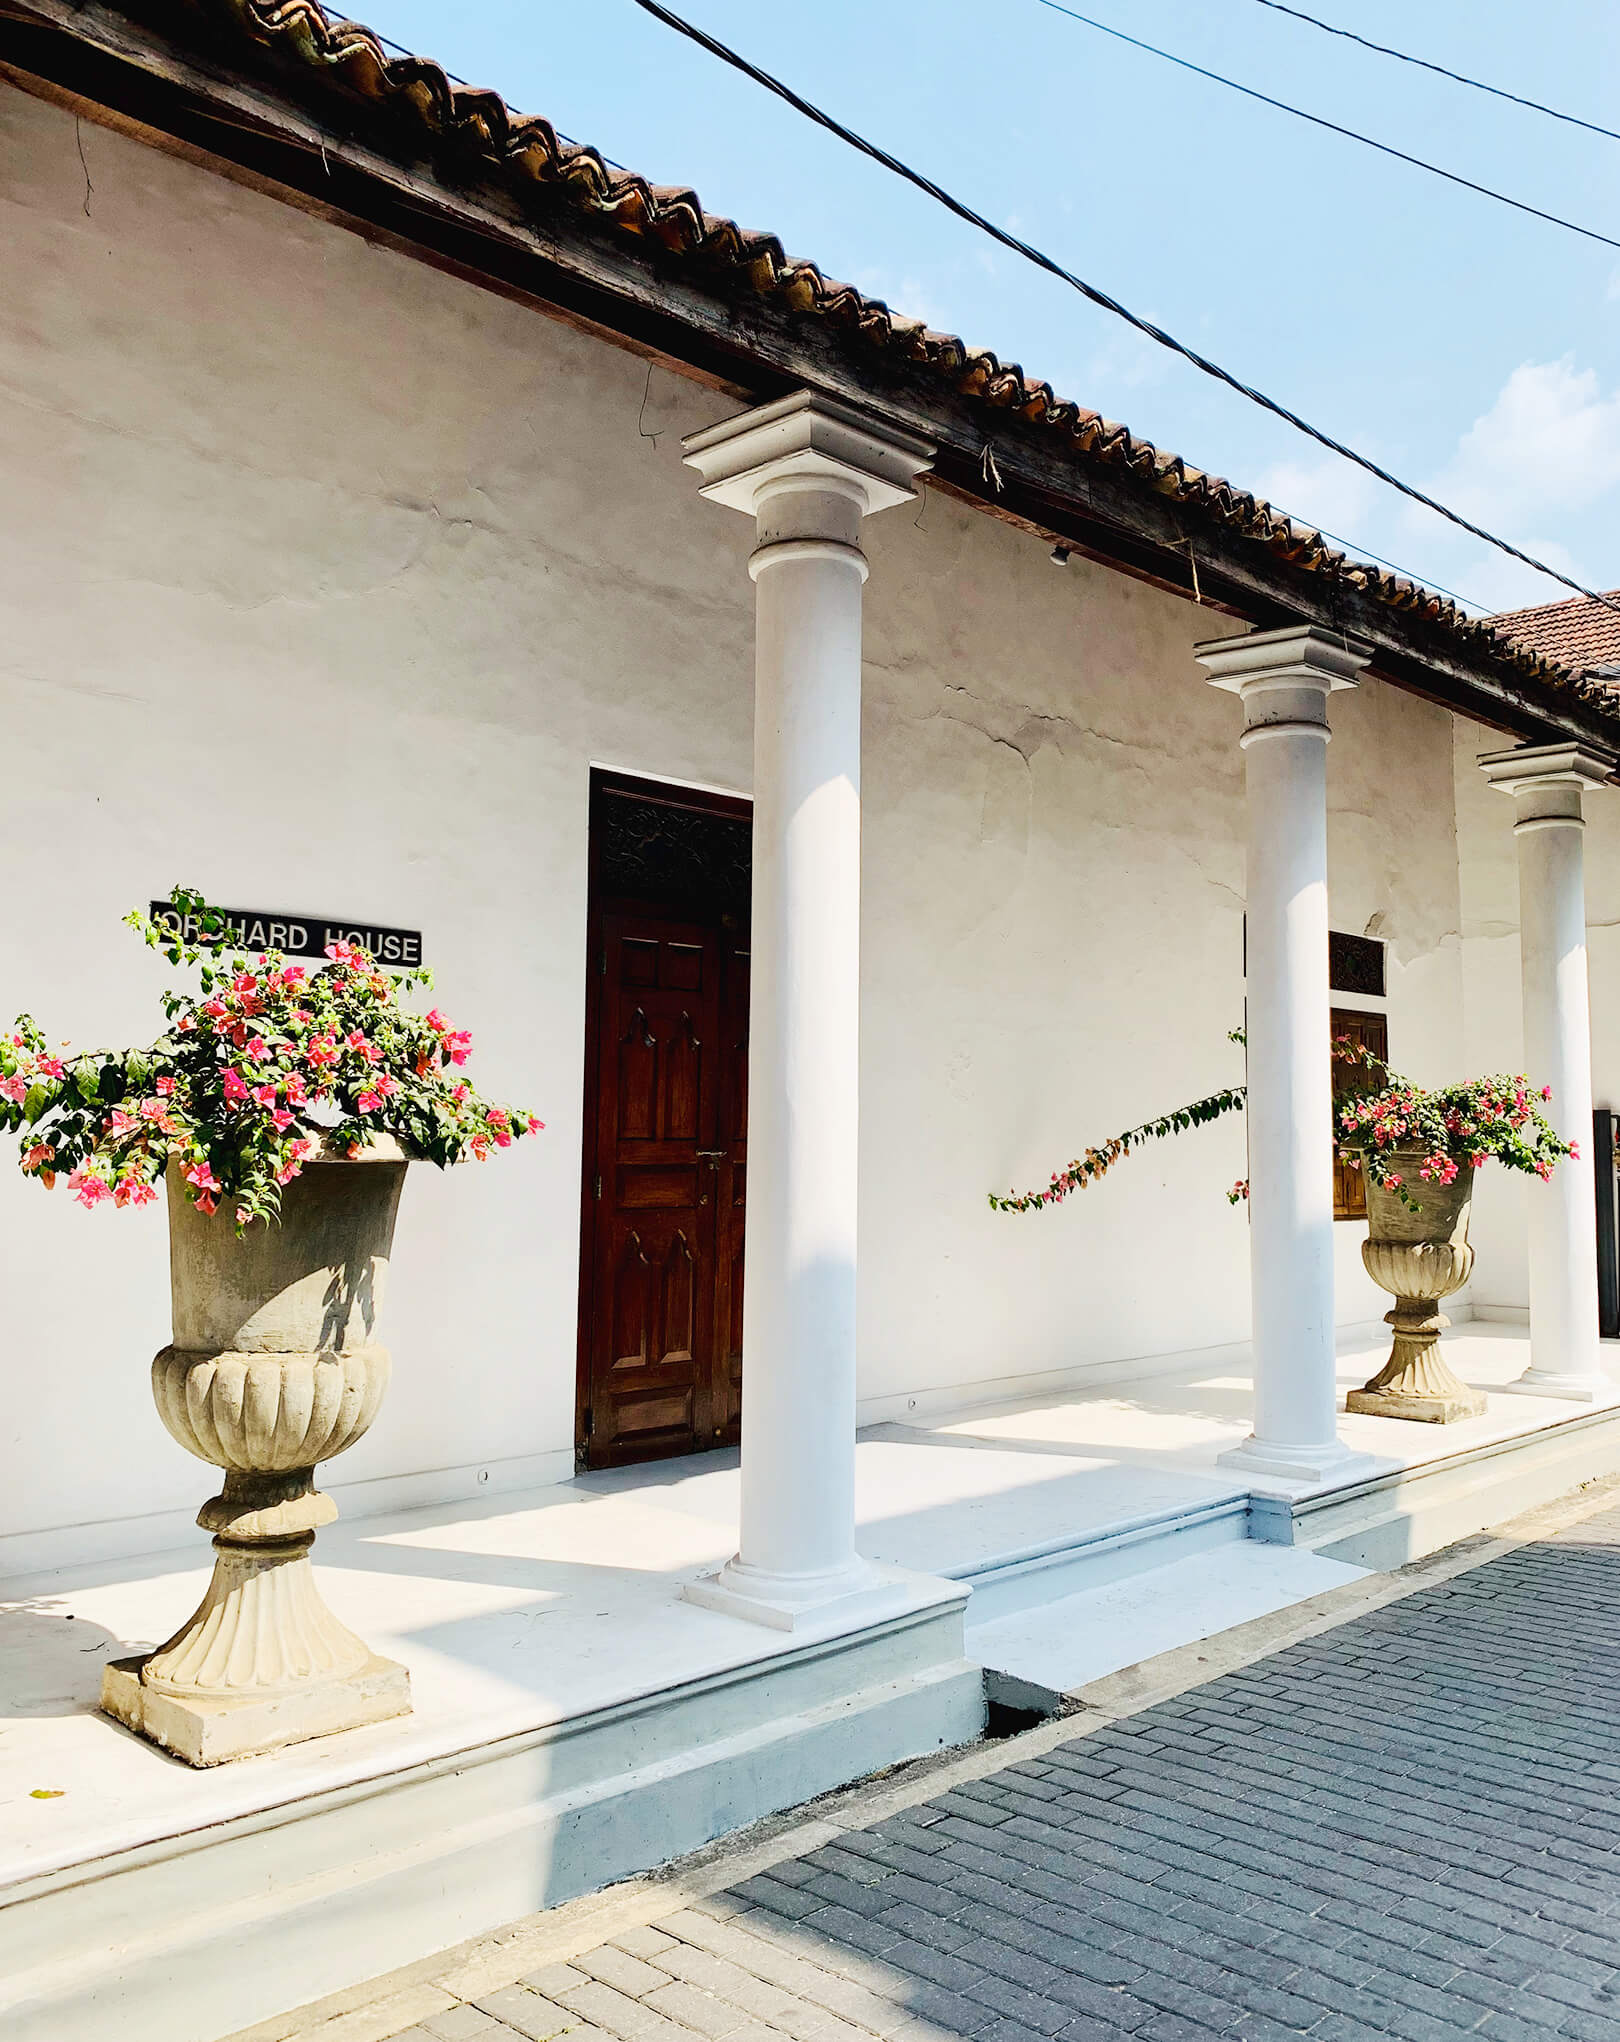 A traditional Sri Lankan house in the Dutch Fort area of Galle with flowering plants